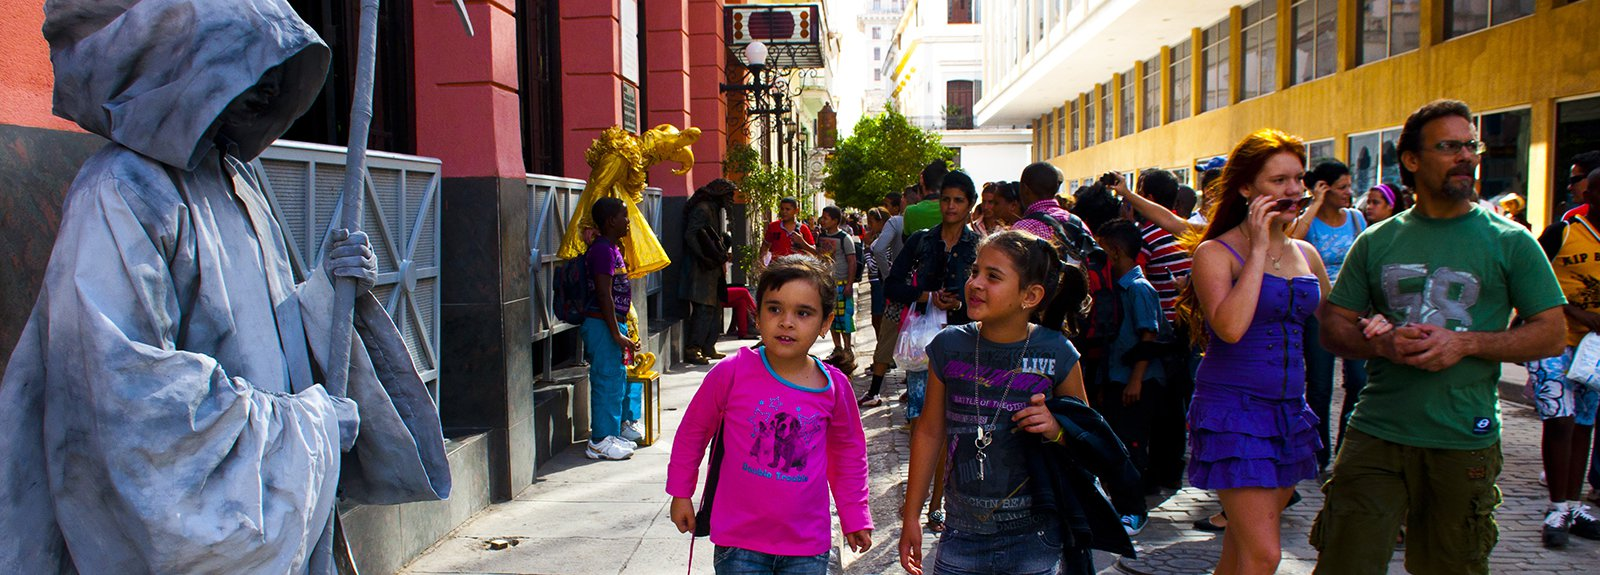 Living statue in gray on the left, child with a pink blouse on the right